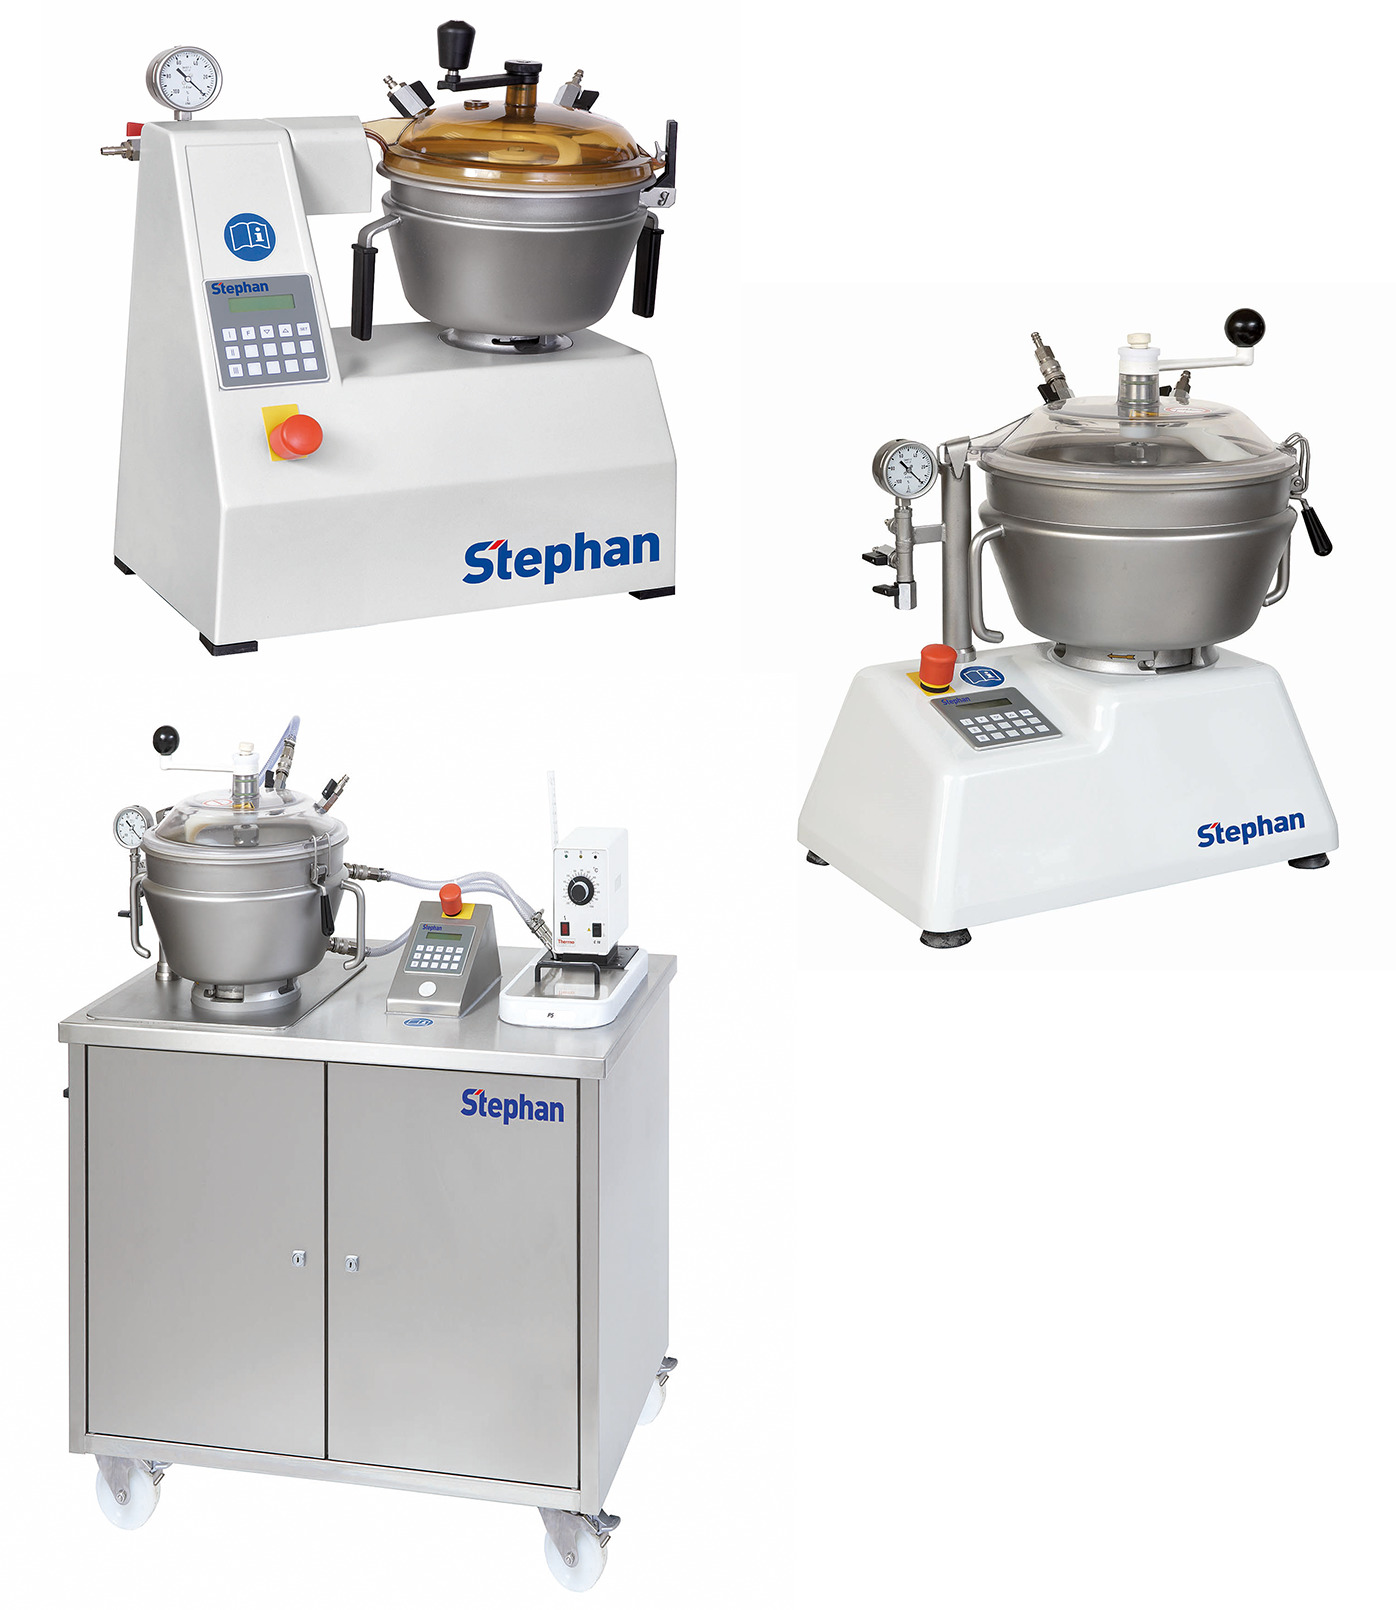 Stephan Table Machines